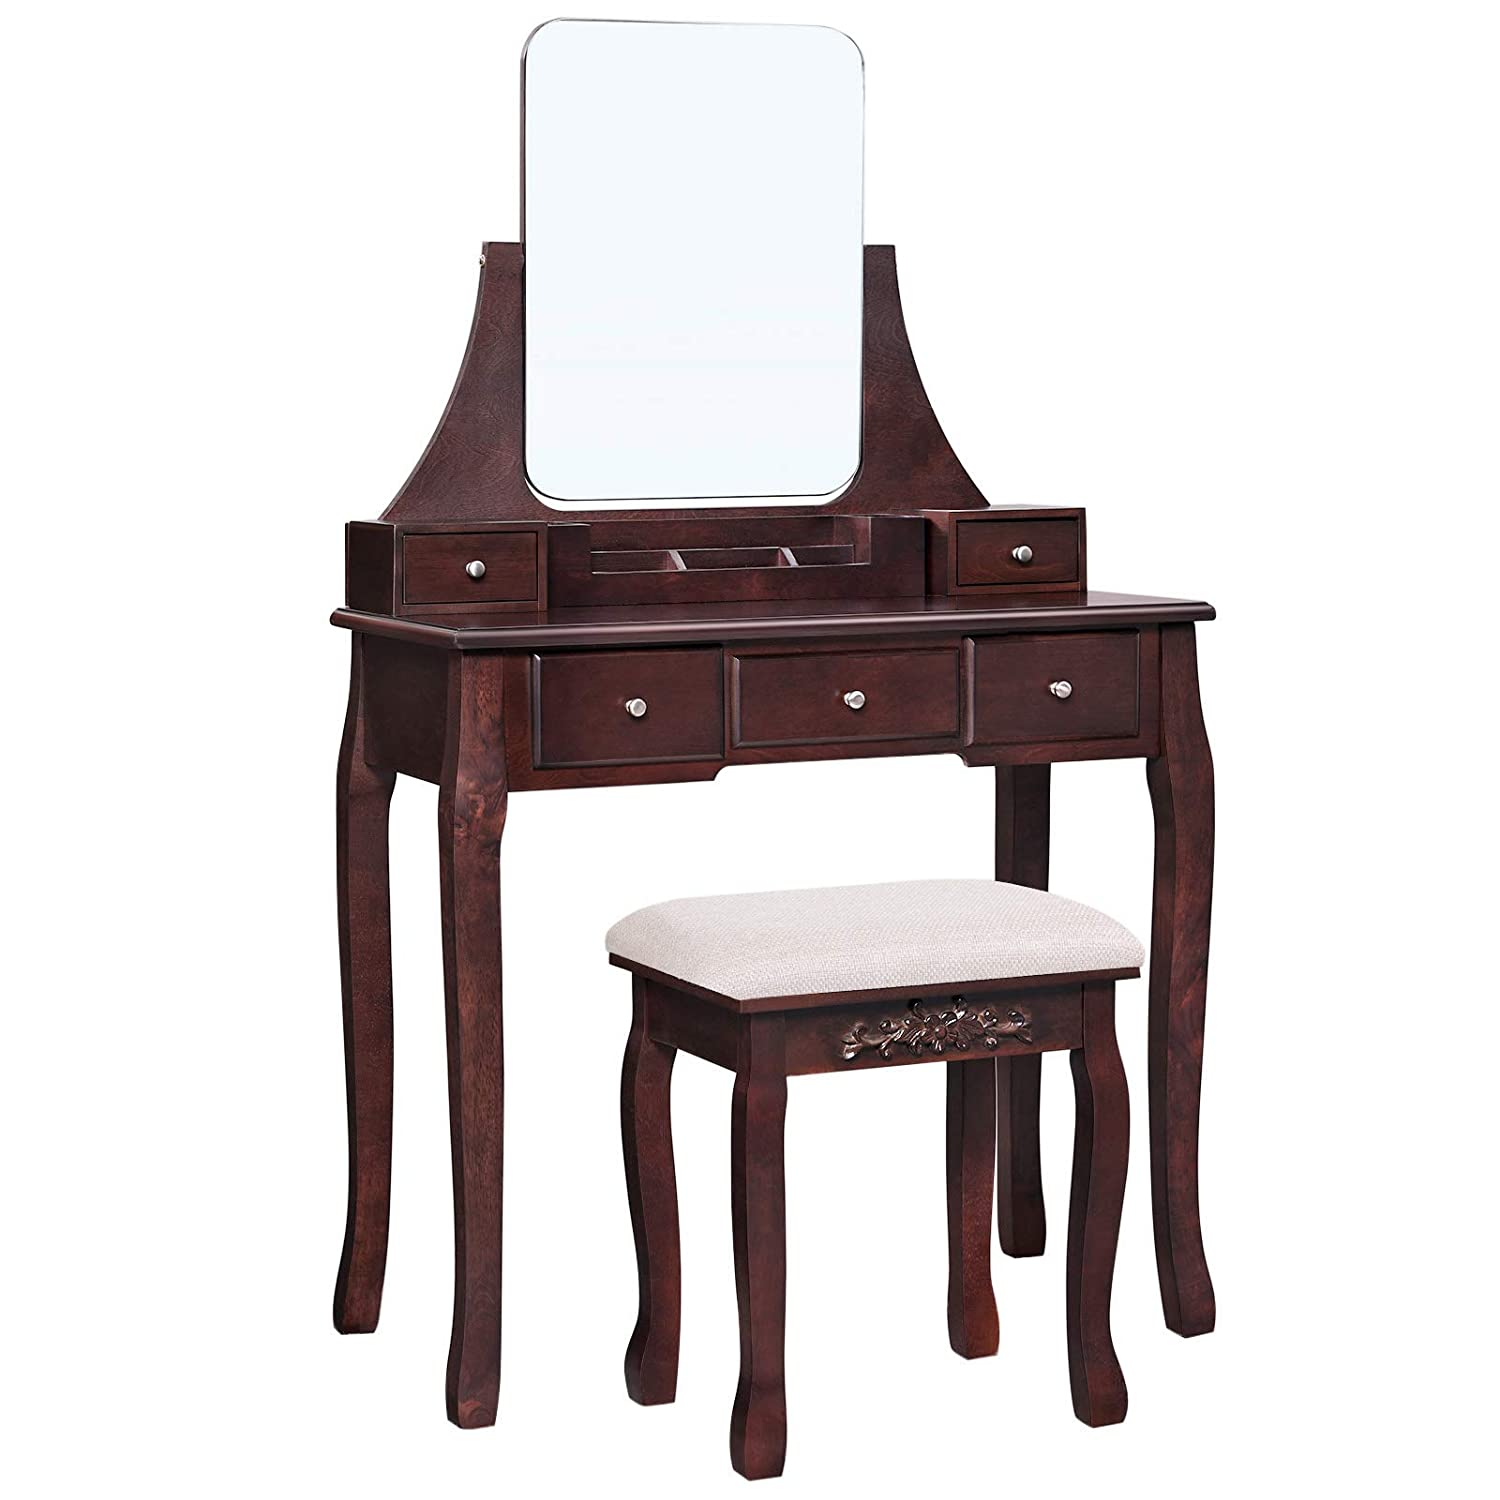 VASAGLE Vanity Table Set with Large Frameless Mirror, Makeup Dressing Table Set for Bedroom, Bathroom, 5 Drawers and 1 Removable Storage Box, Cushioned Stool, Espresso URDT25BR